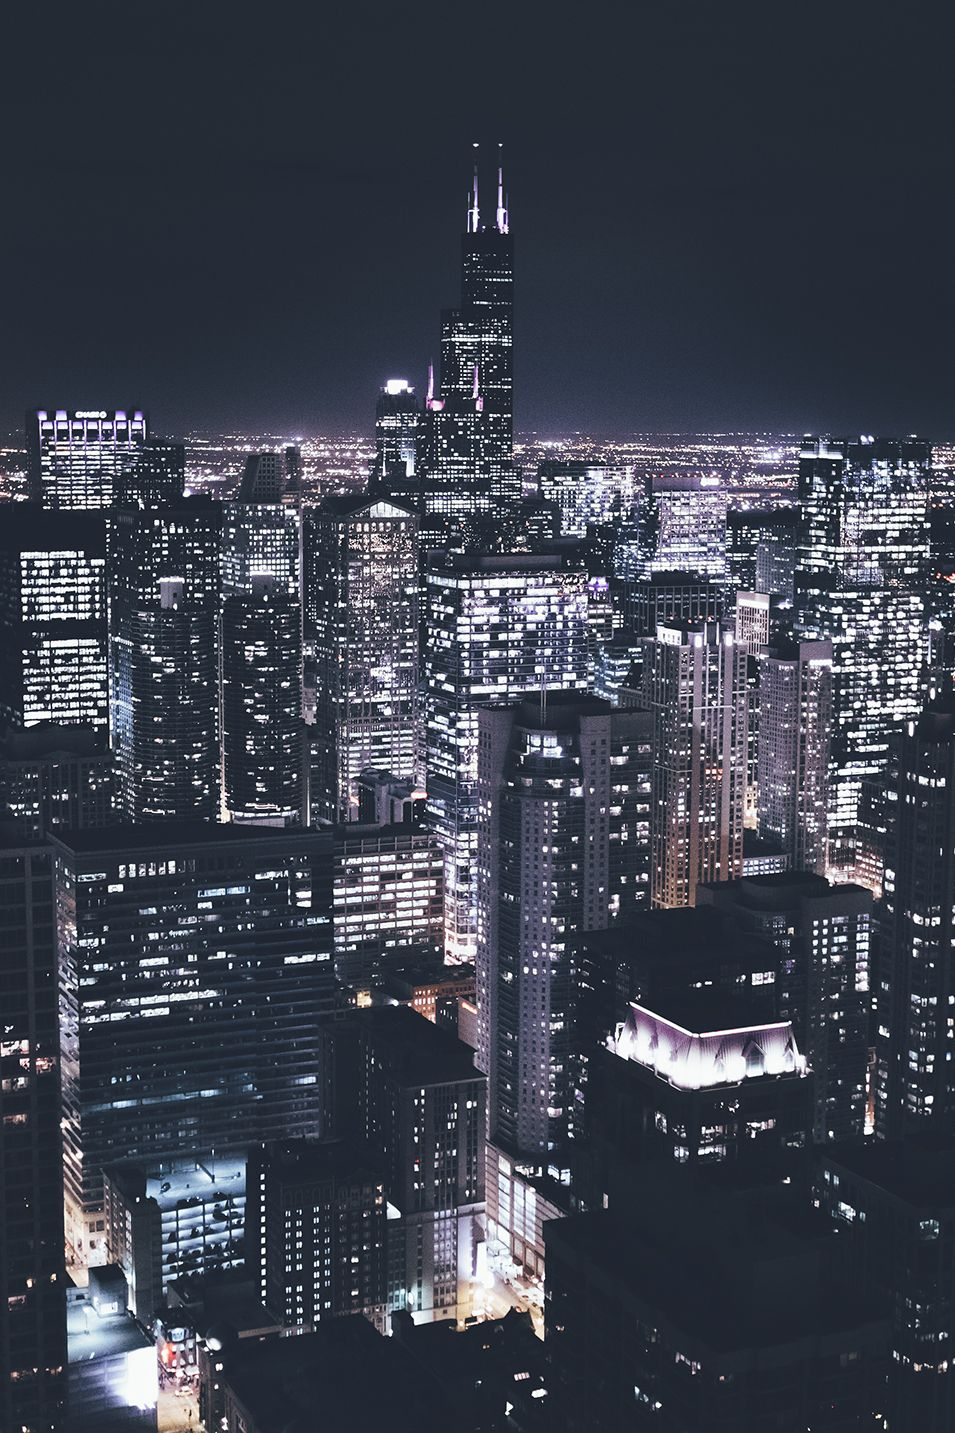 My Great Escape New York Iphone Wallpaper City Lights Tumblr City Lights At Night